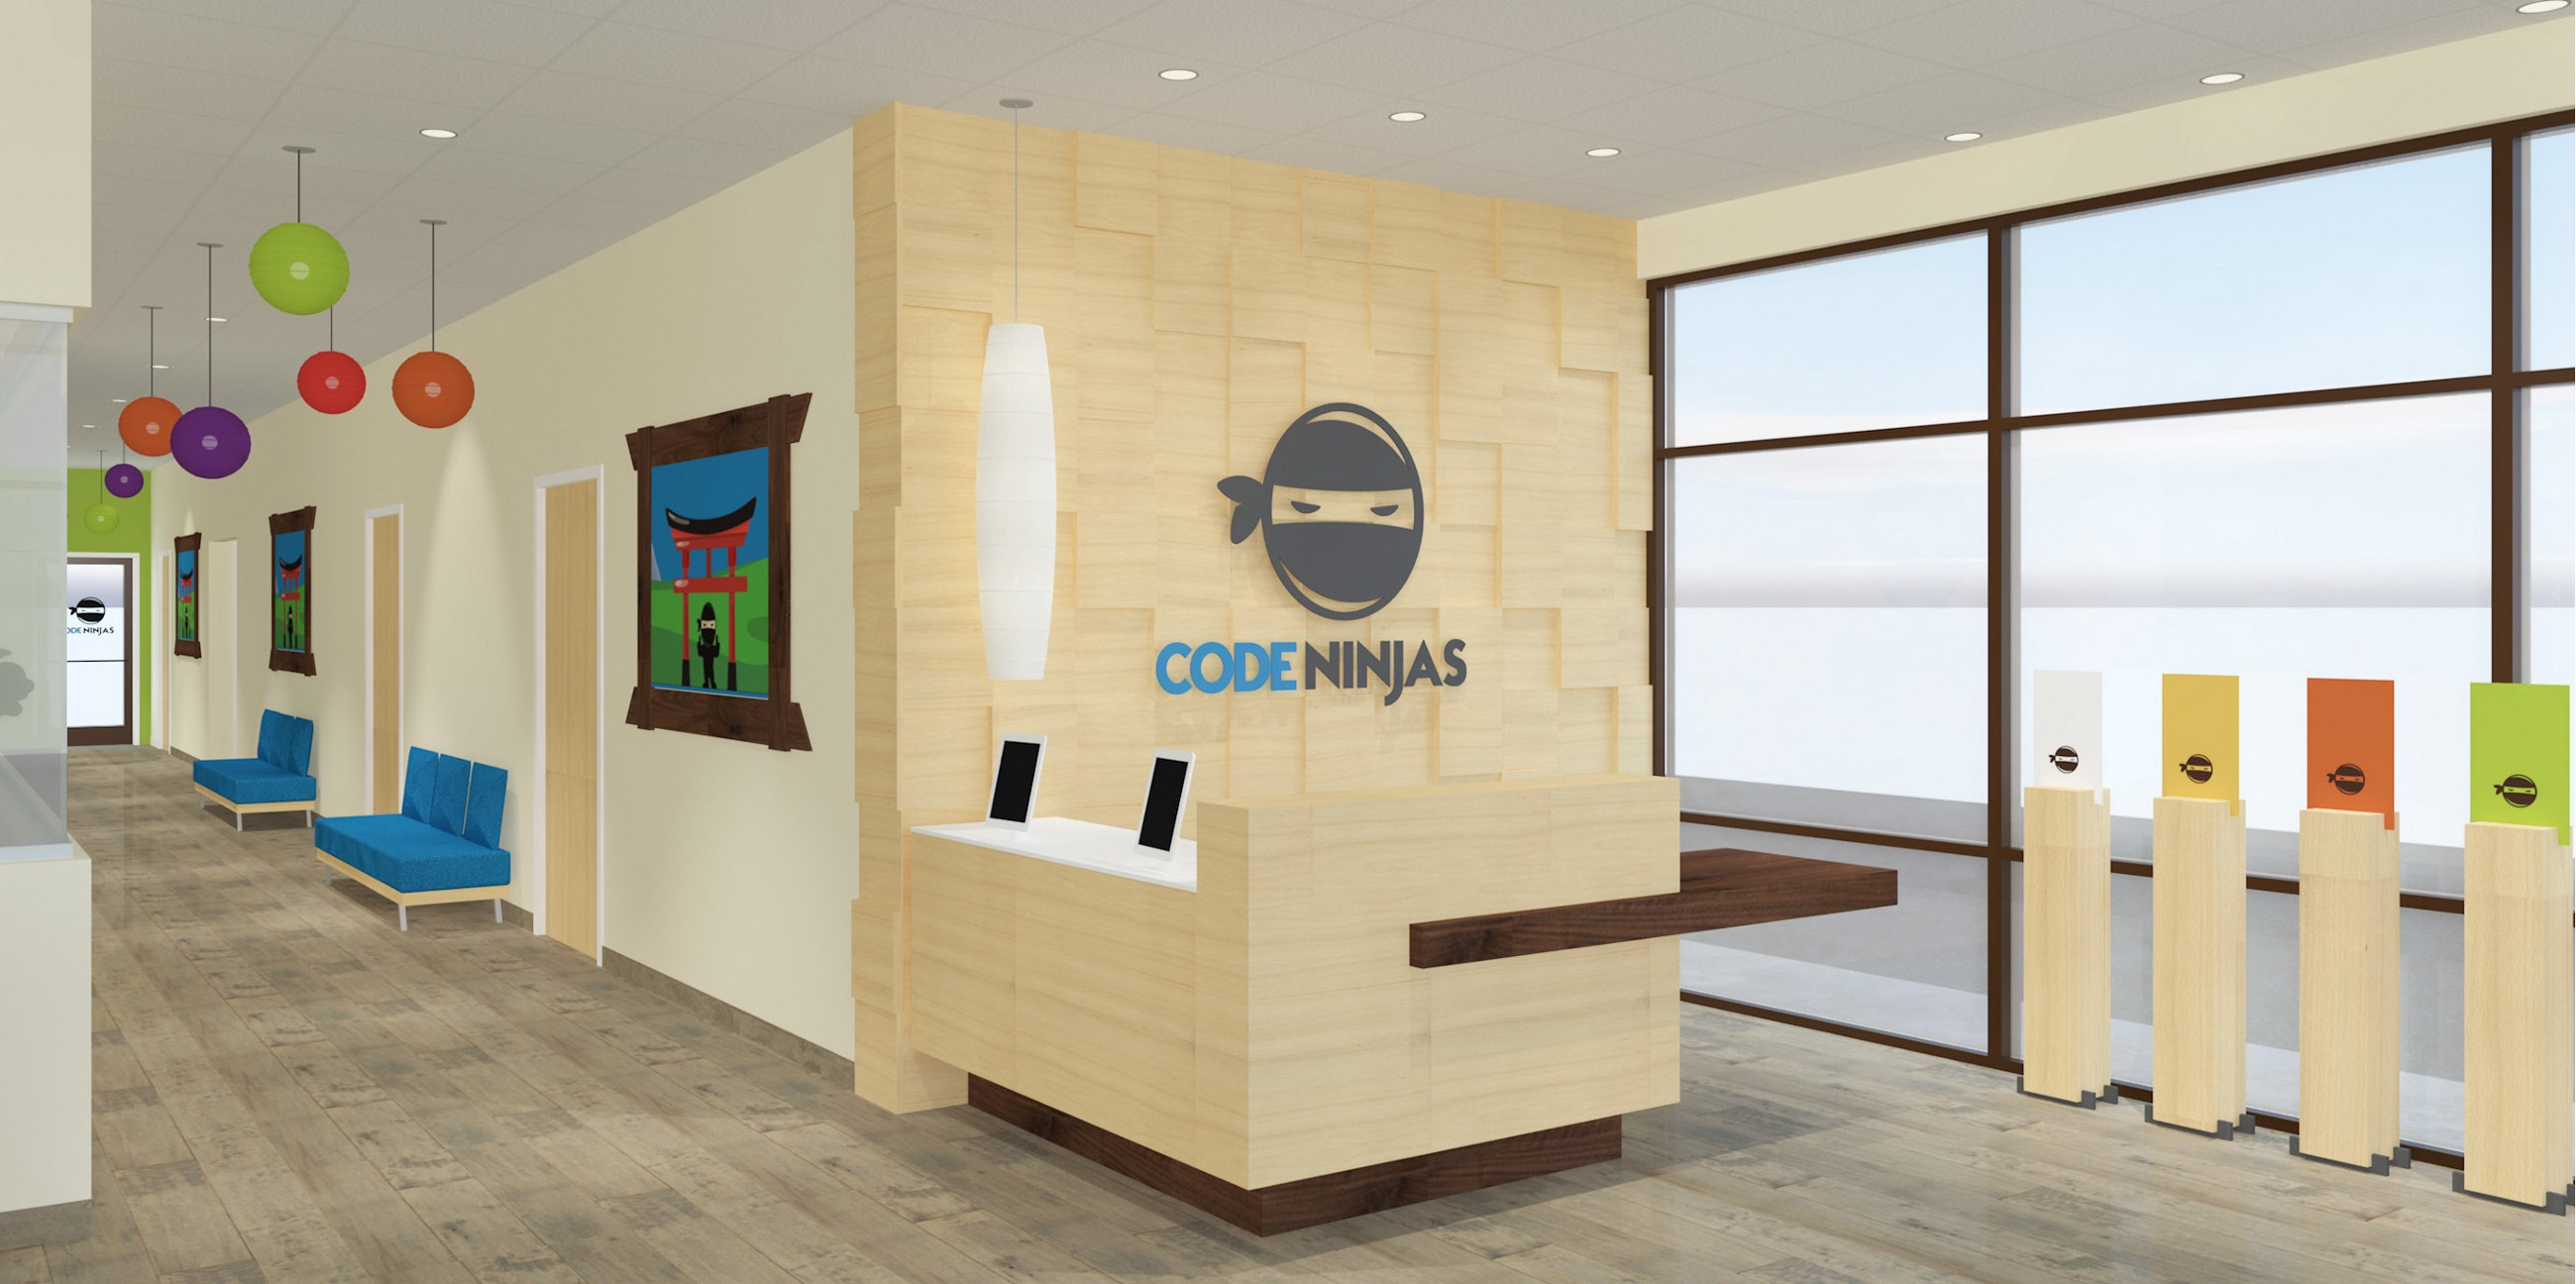 is Code Ninjas a Good Franchise to Own?